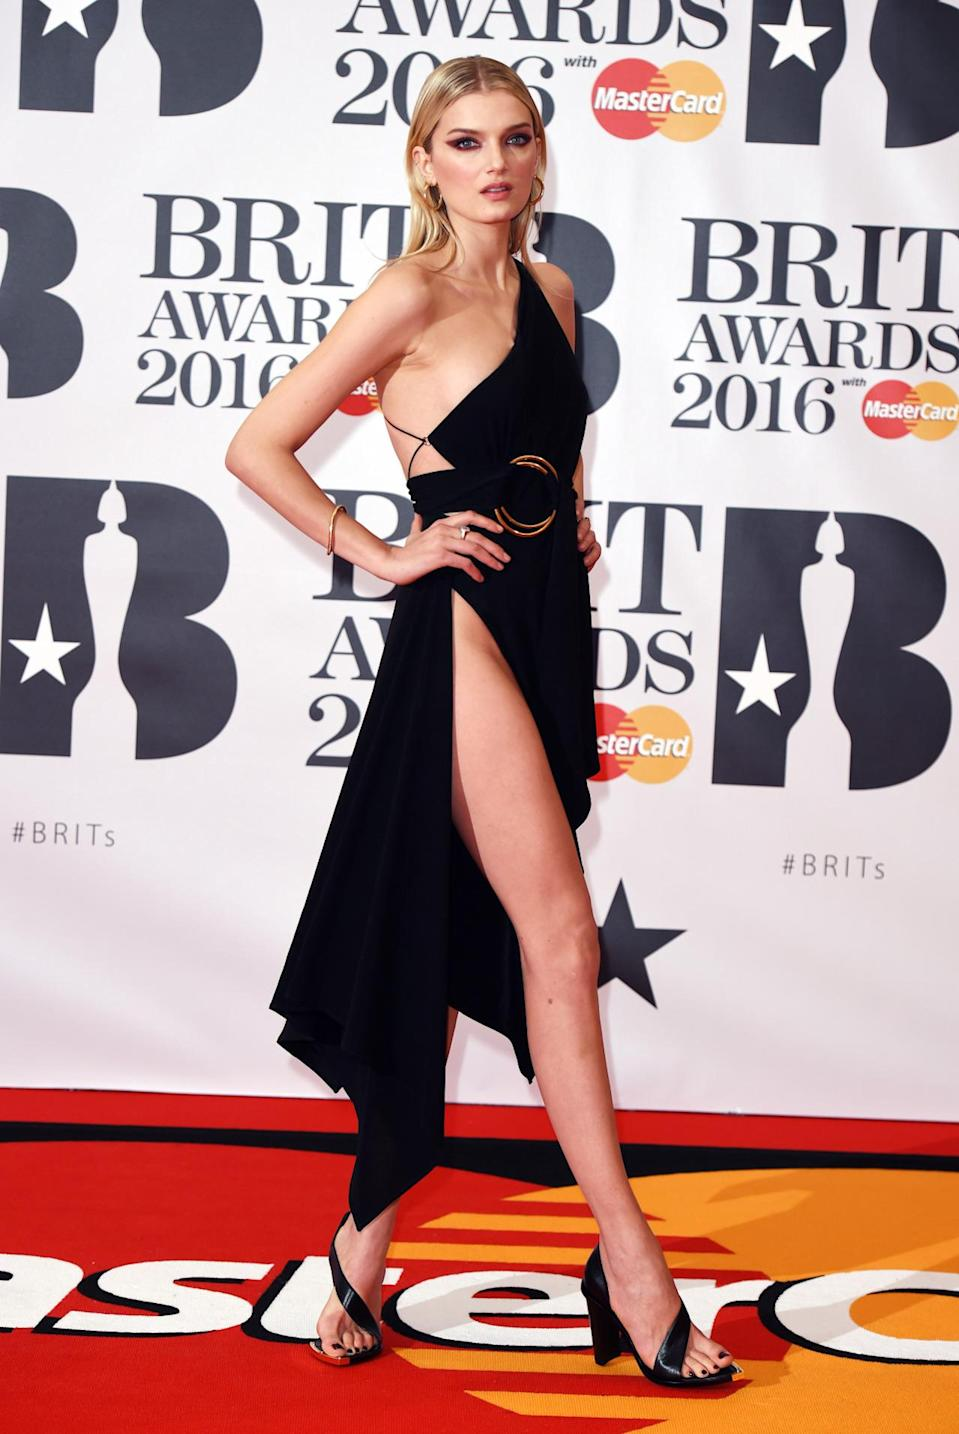 <p>The British model upped the ante in a VERY revealing black gown. <i>[Photo: Rex]</i></p>